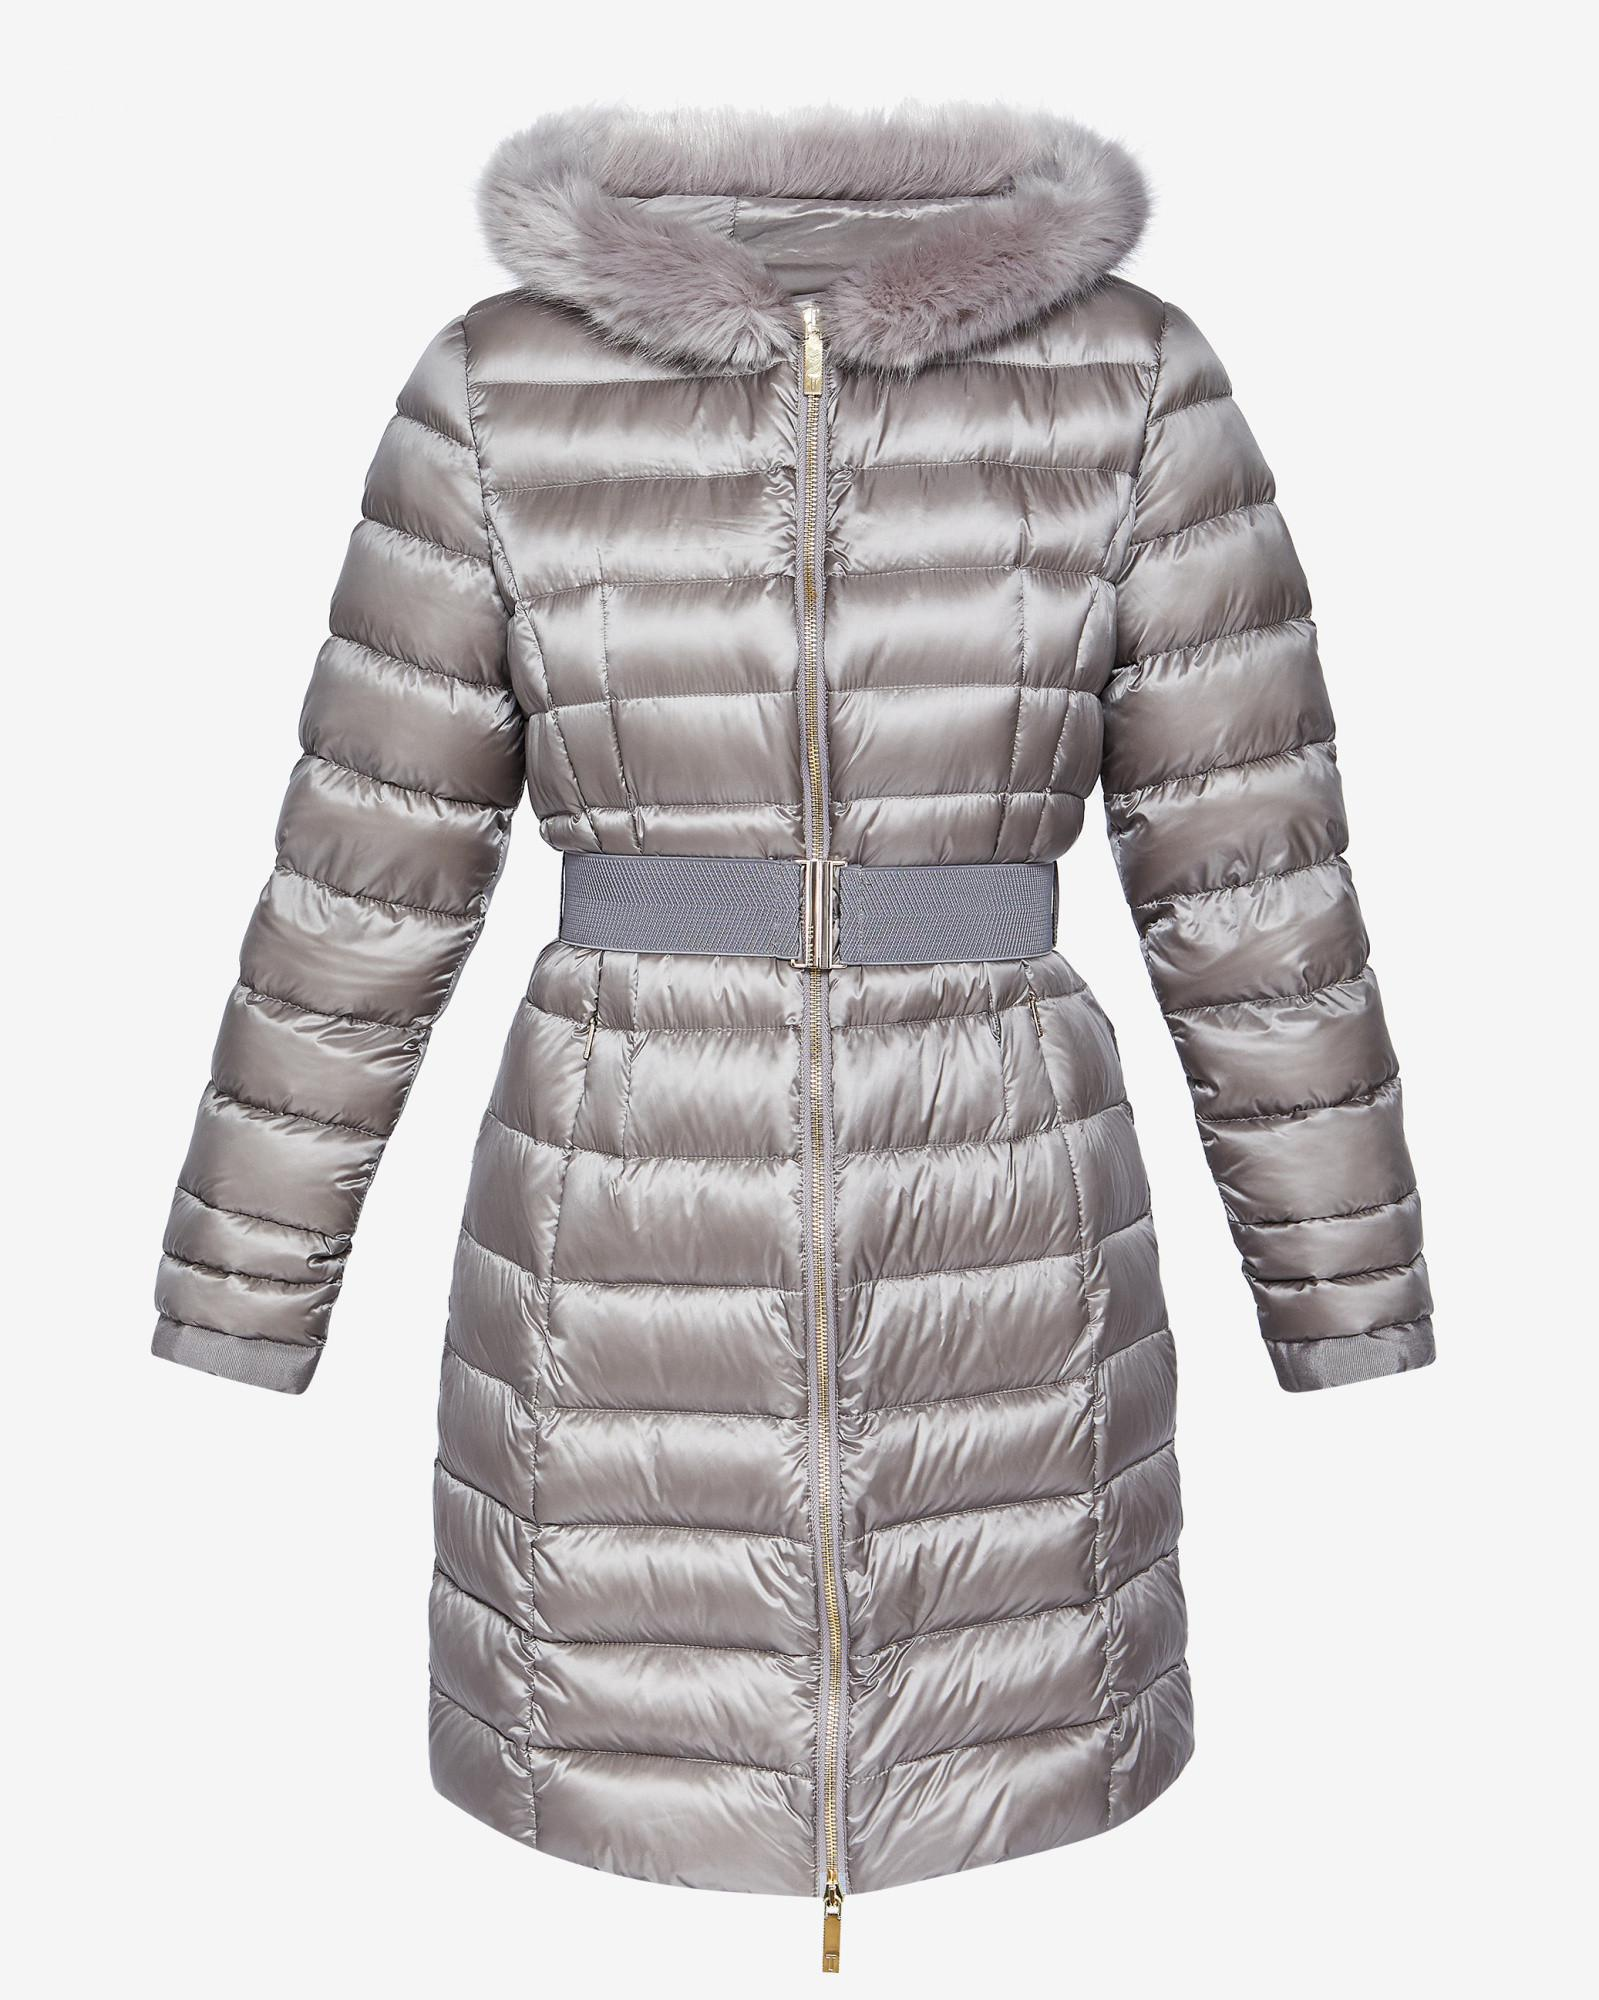 418ebee60b721 Lyst - Ted Baker Long Hooded Puffer Coat in Gray